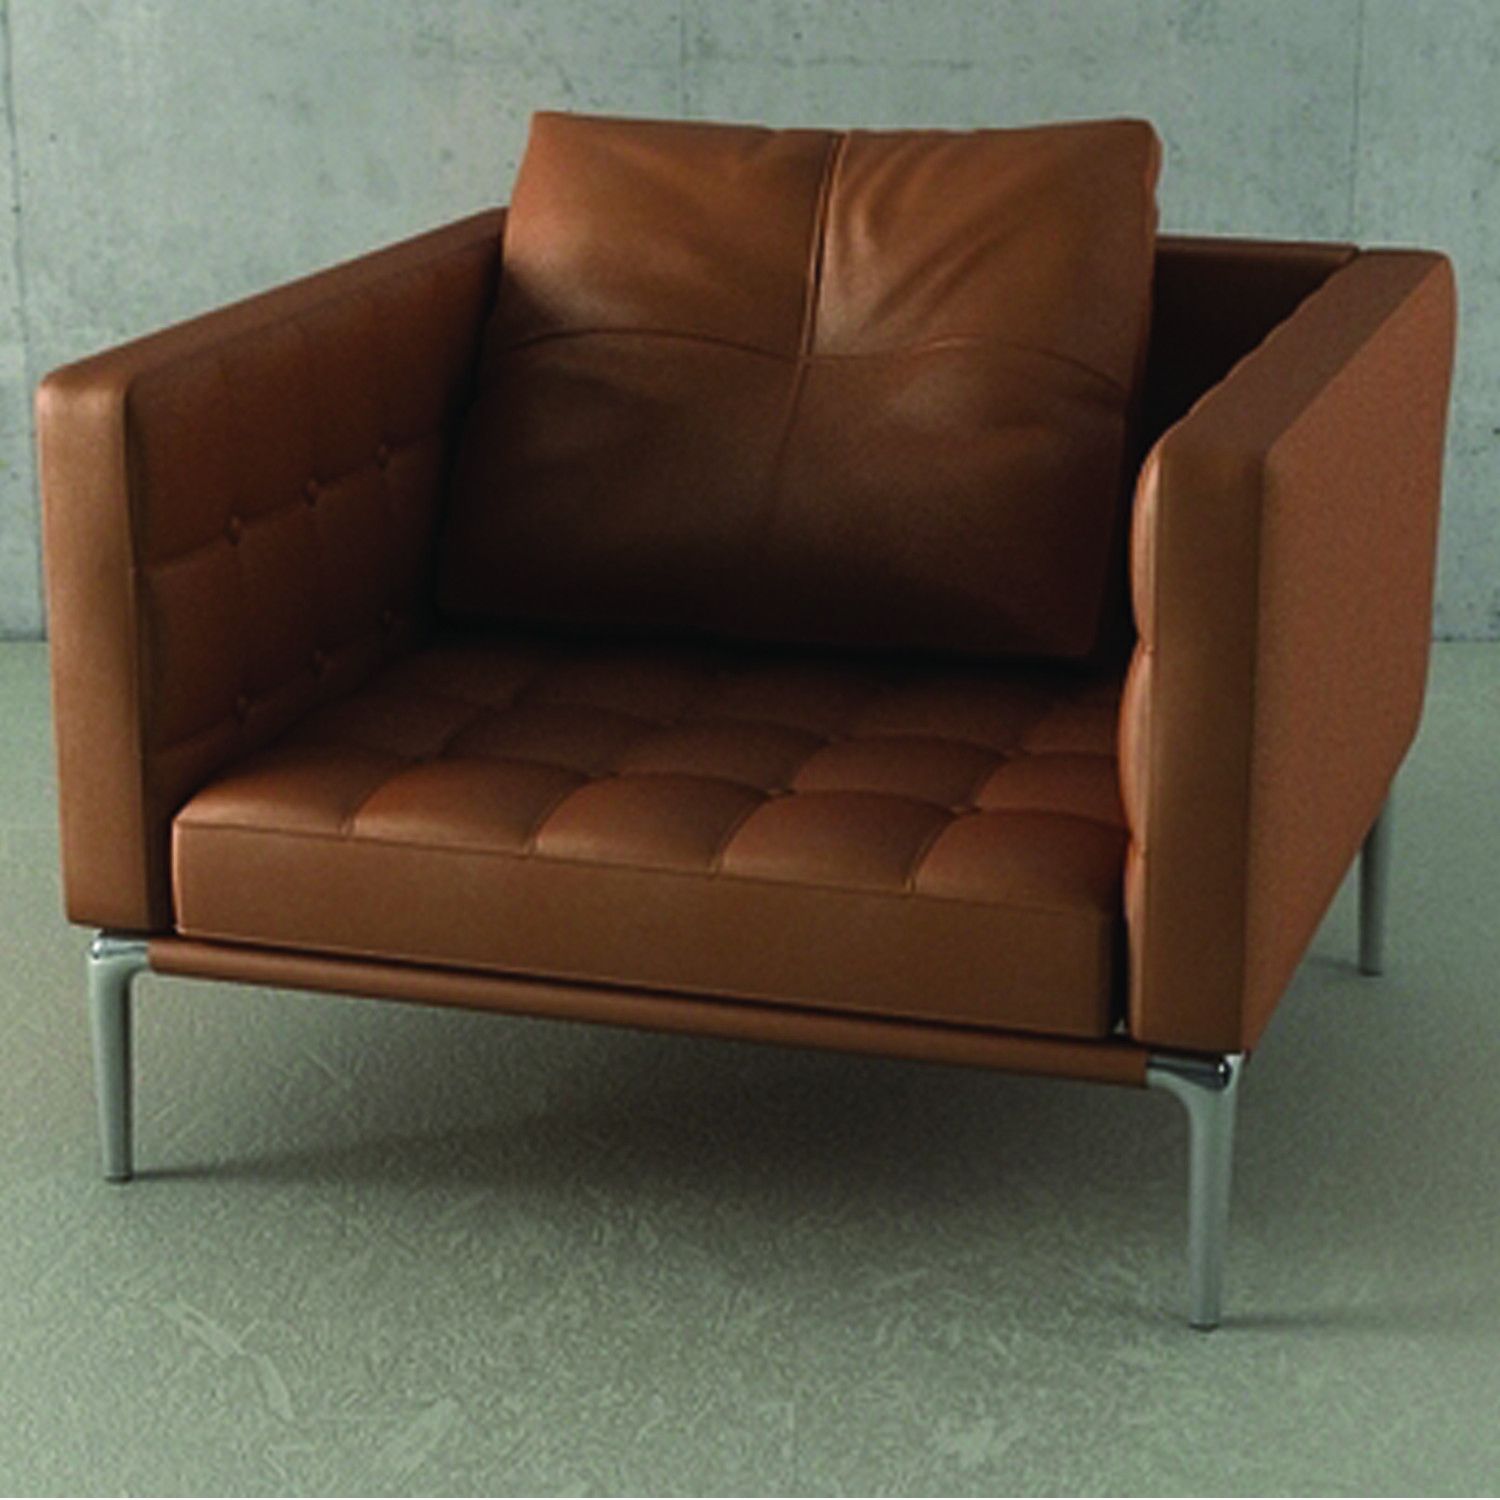 243 Volage Armchair by Cassina